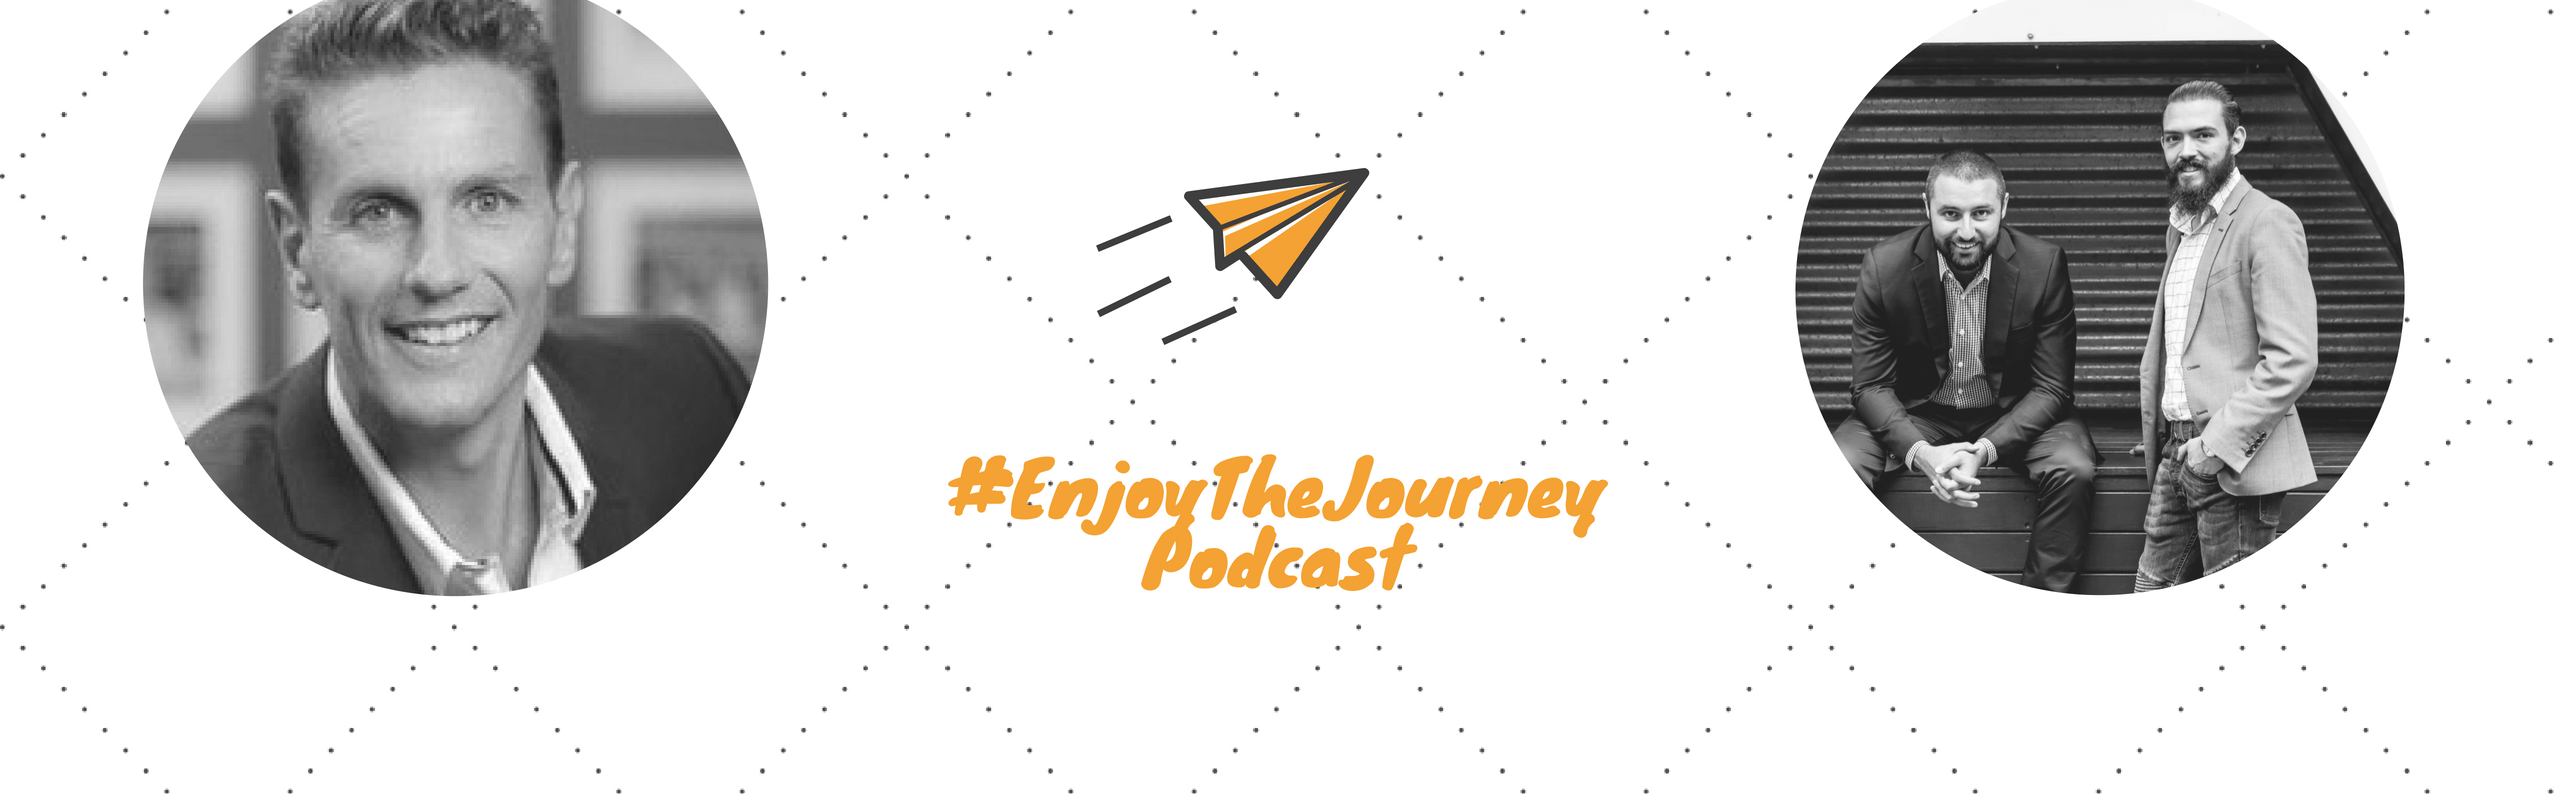 #EnjoyTheJourney Podcast Ep18 – An insight from James Short on achieving explosive growth in a real estate business